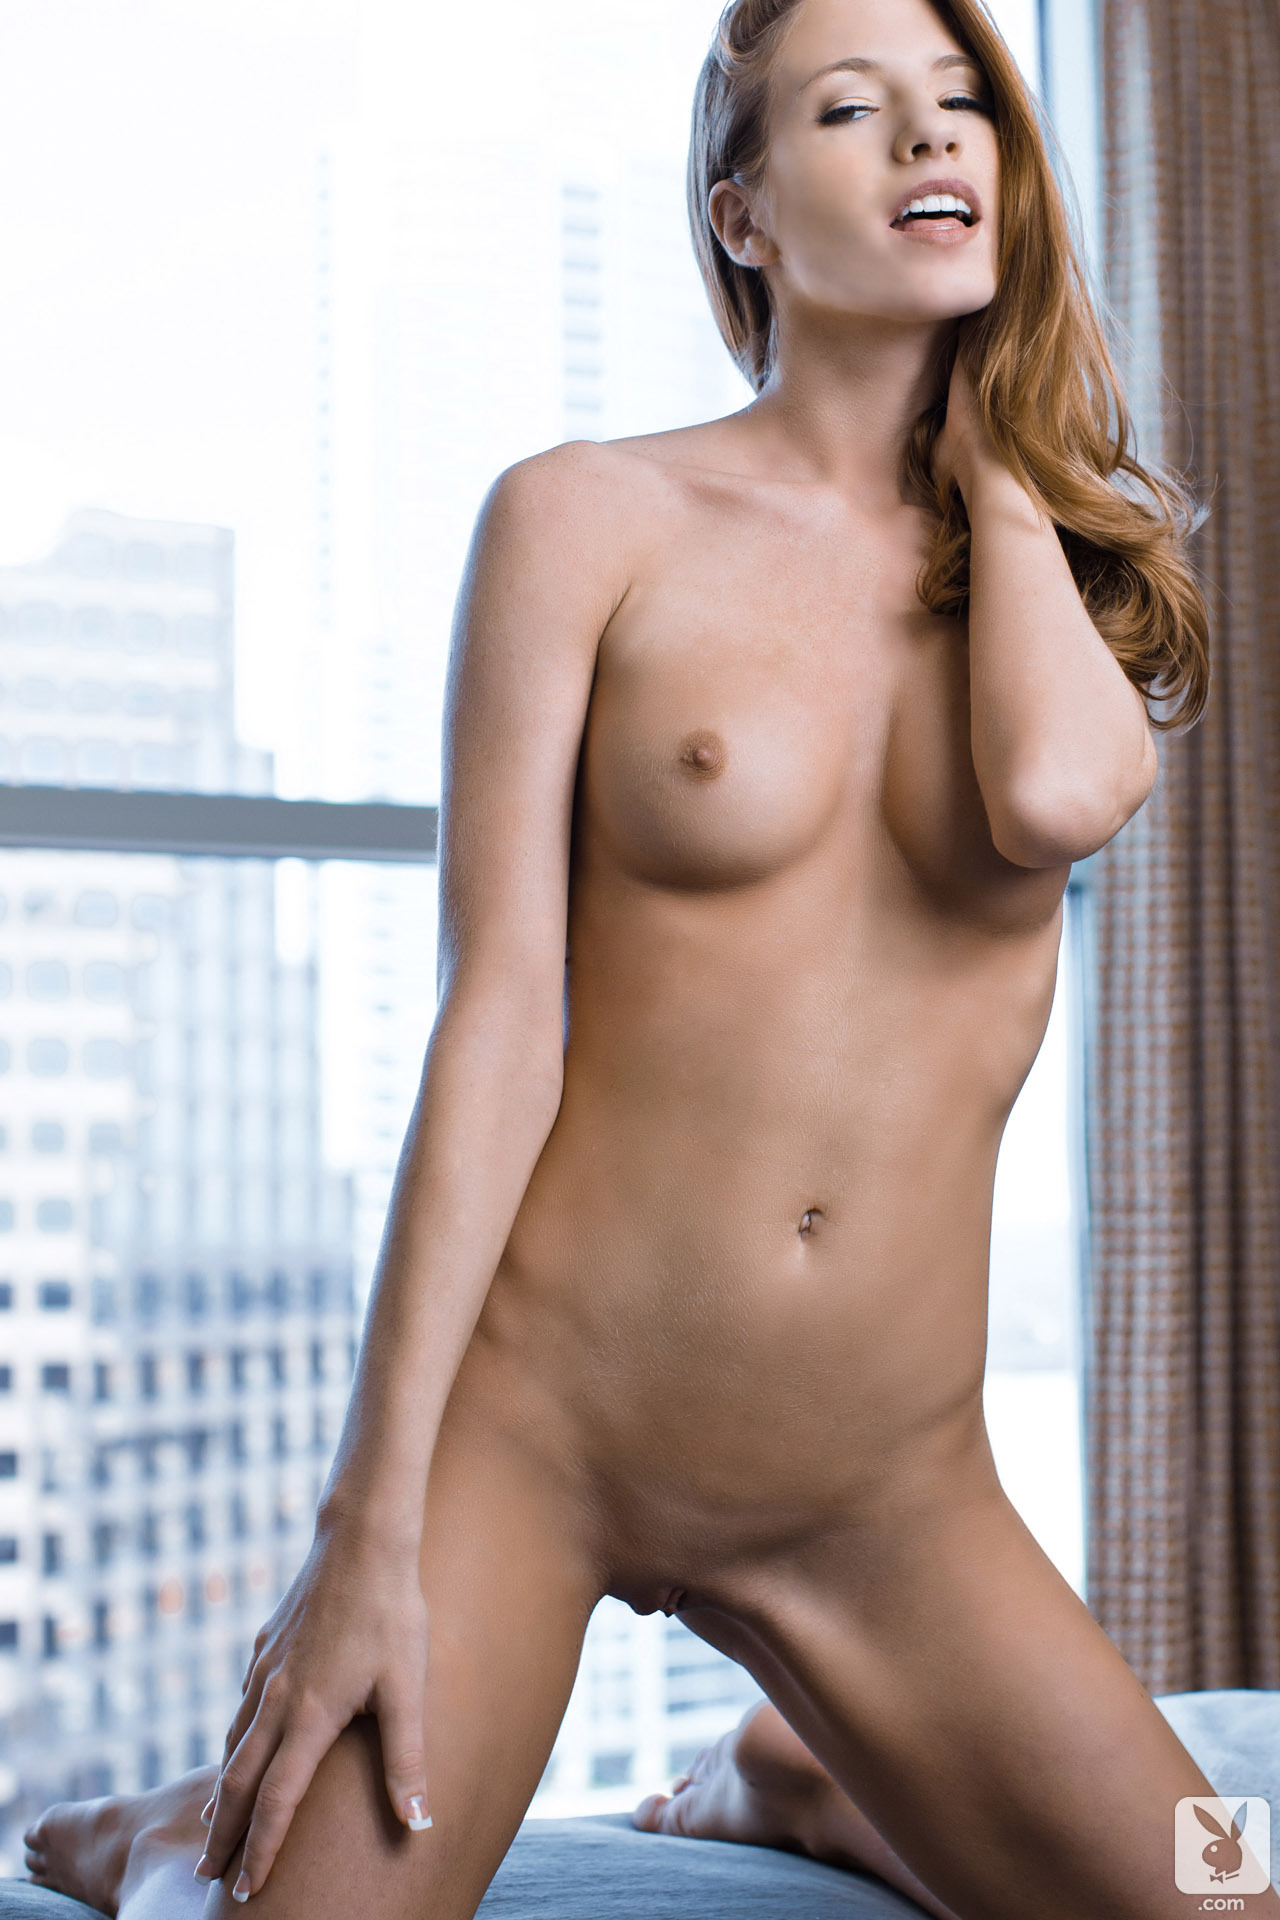 bree-morgan-nude-apartment-redhead-playboy-12